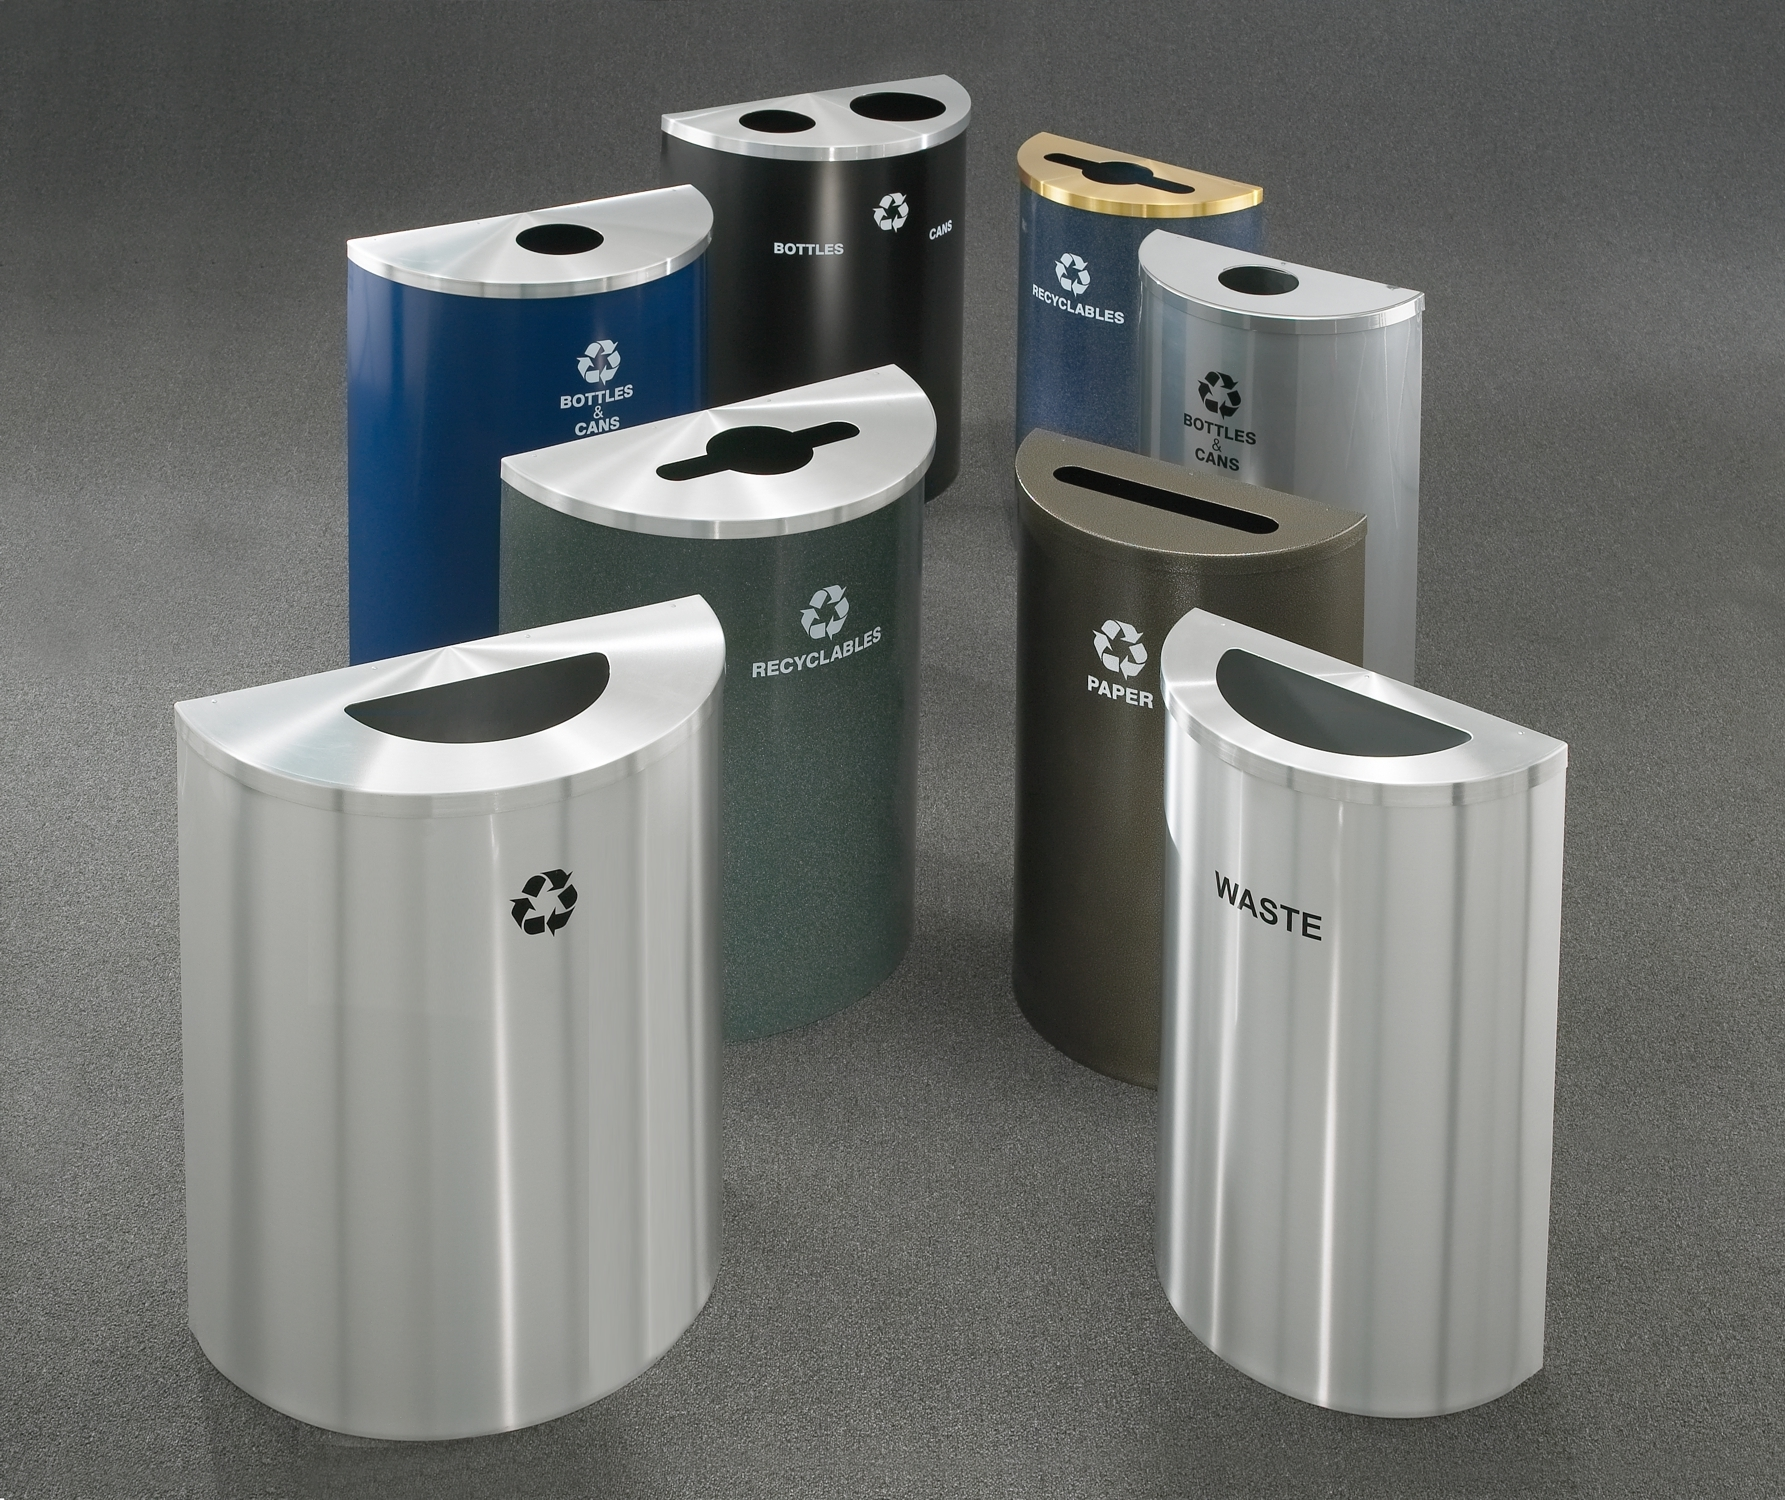 3 Gallon Stainless Steel Trash Can Madison Art Center Design